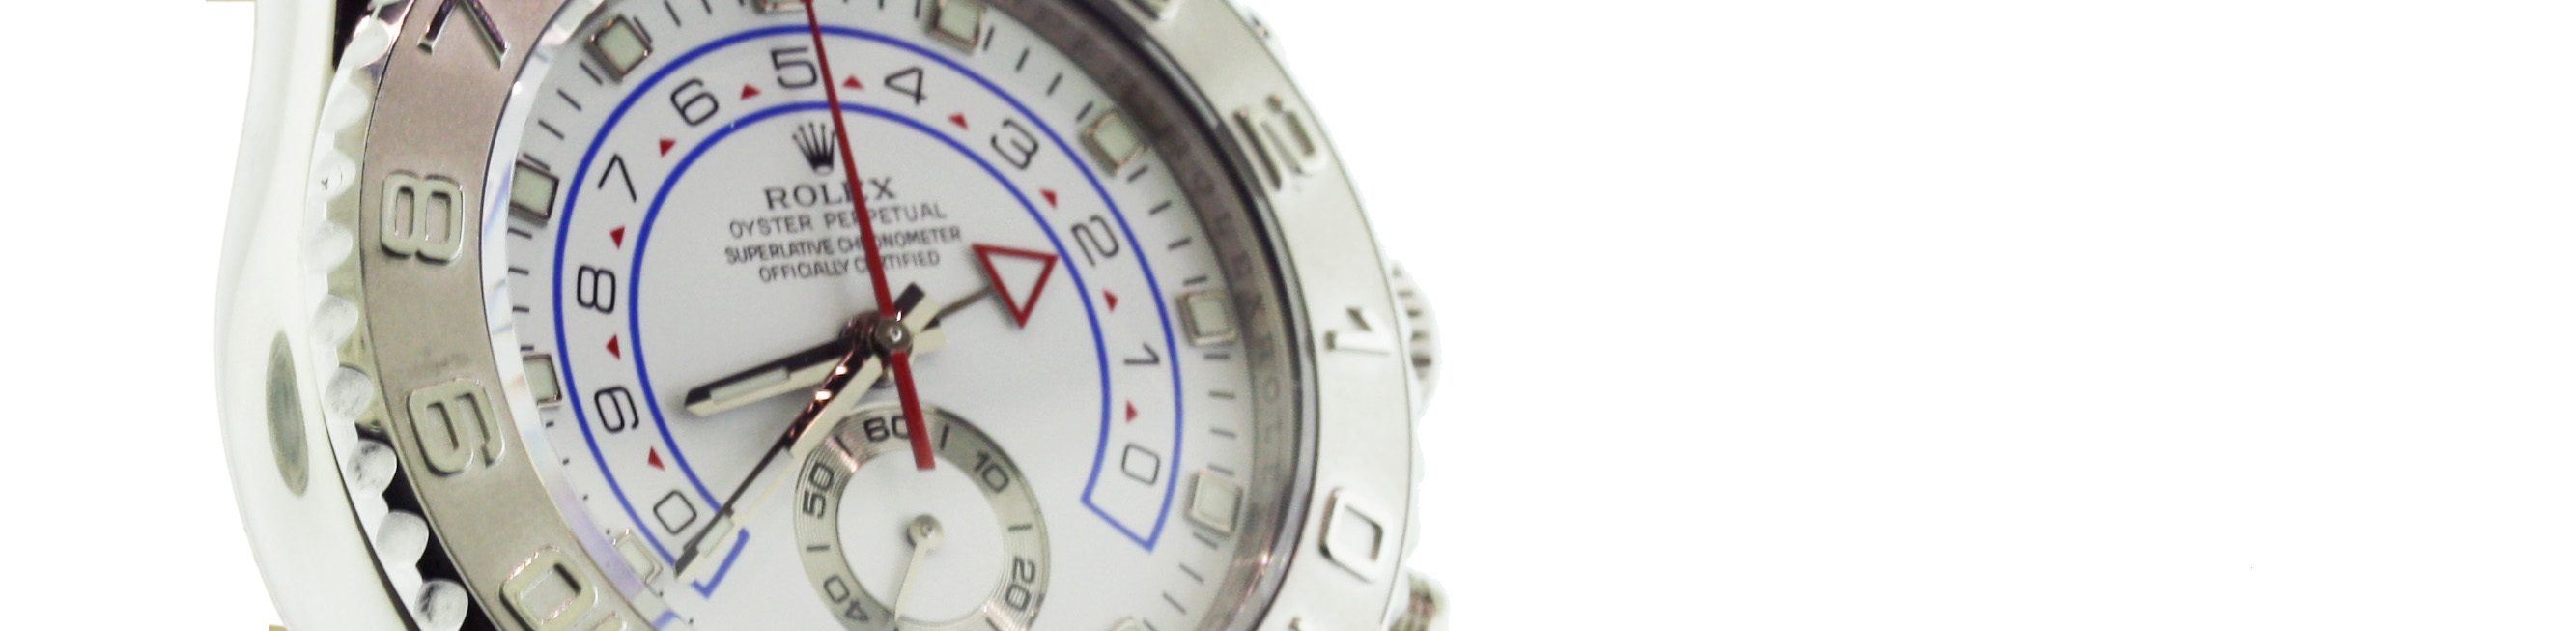 PRE-OWNED WATCHES - MARCH 2021 NEWS article hero image